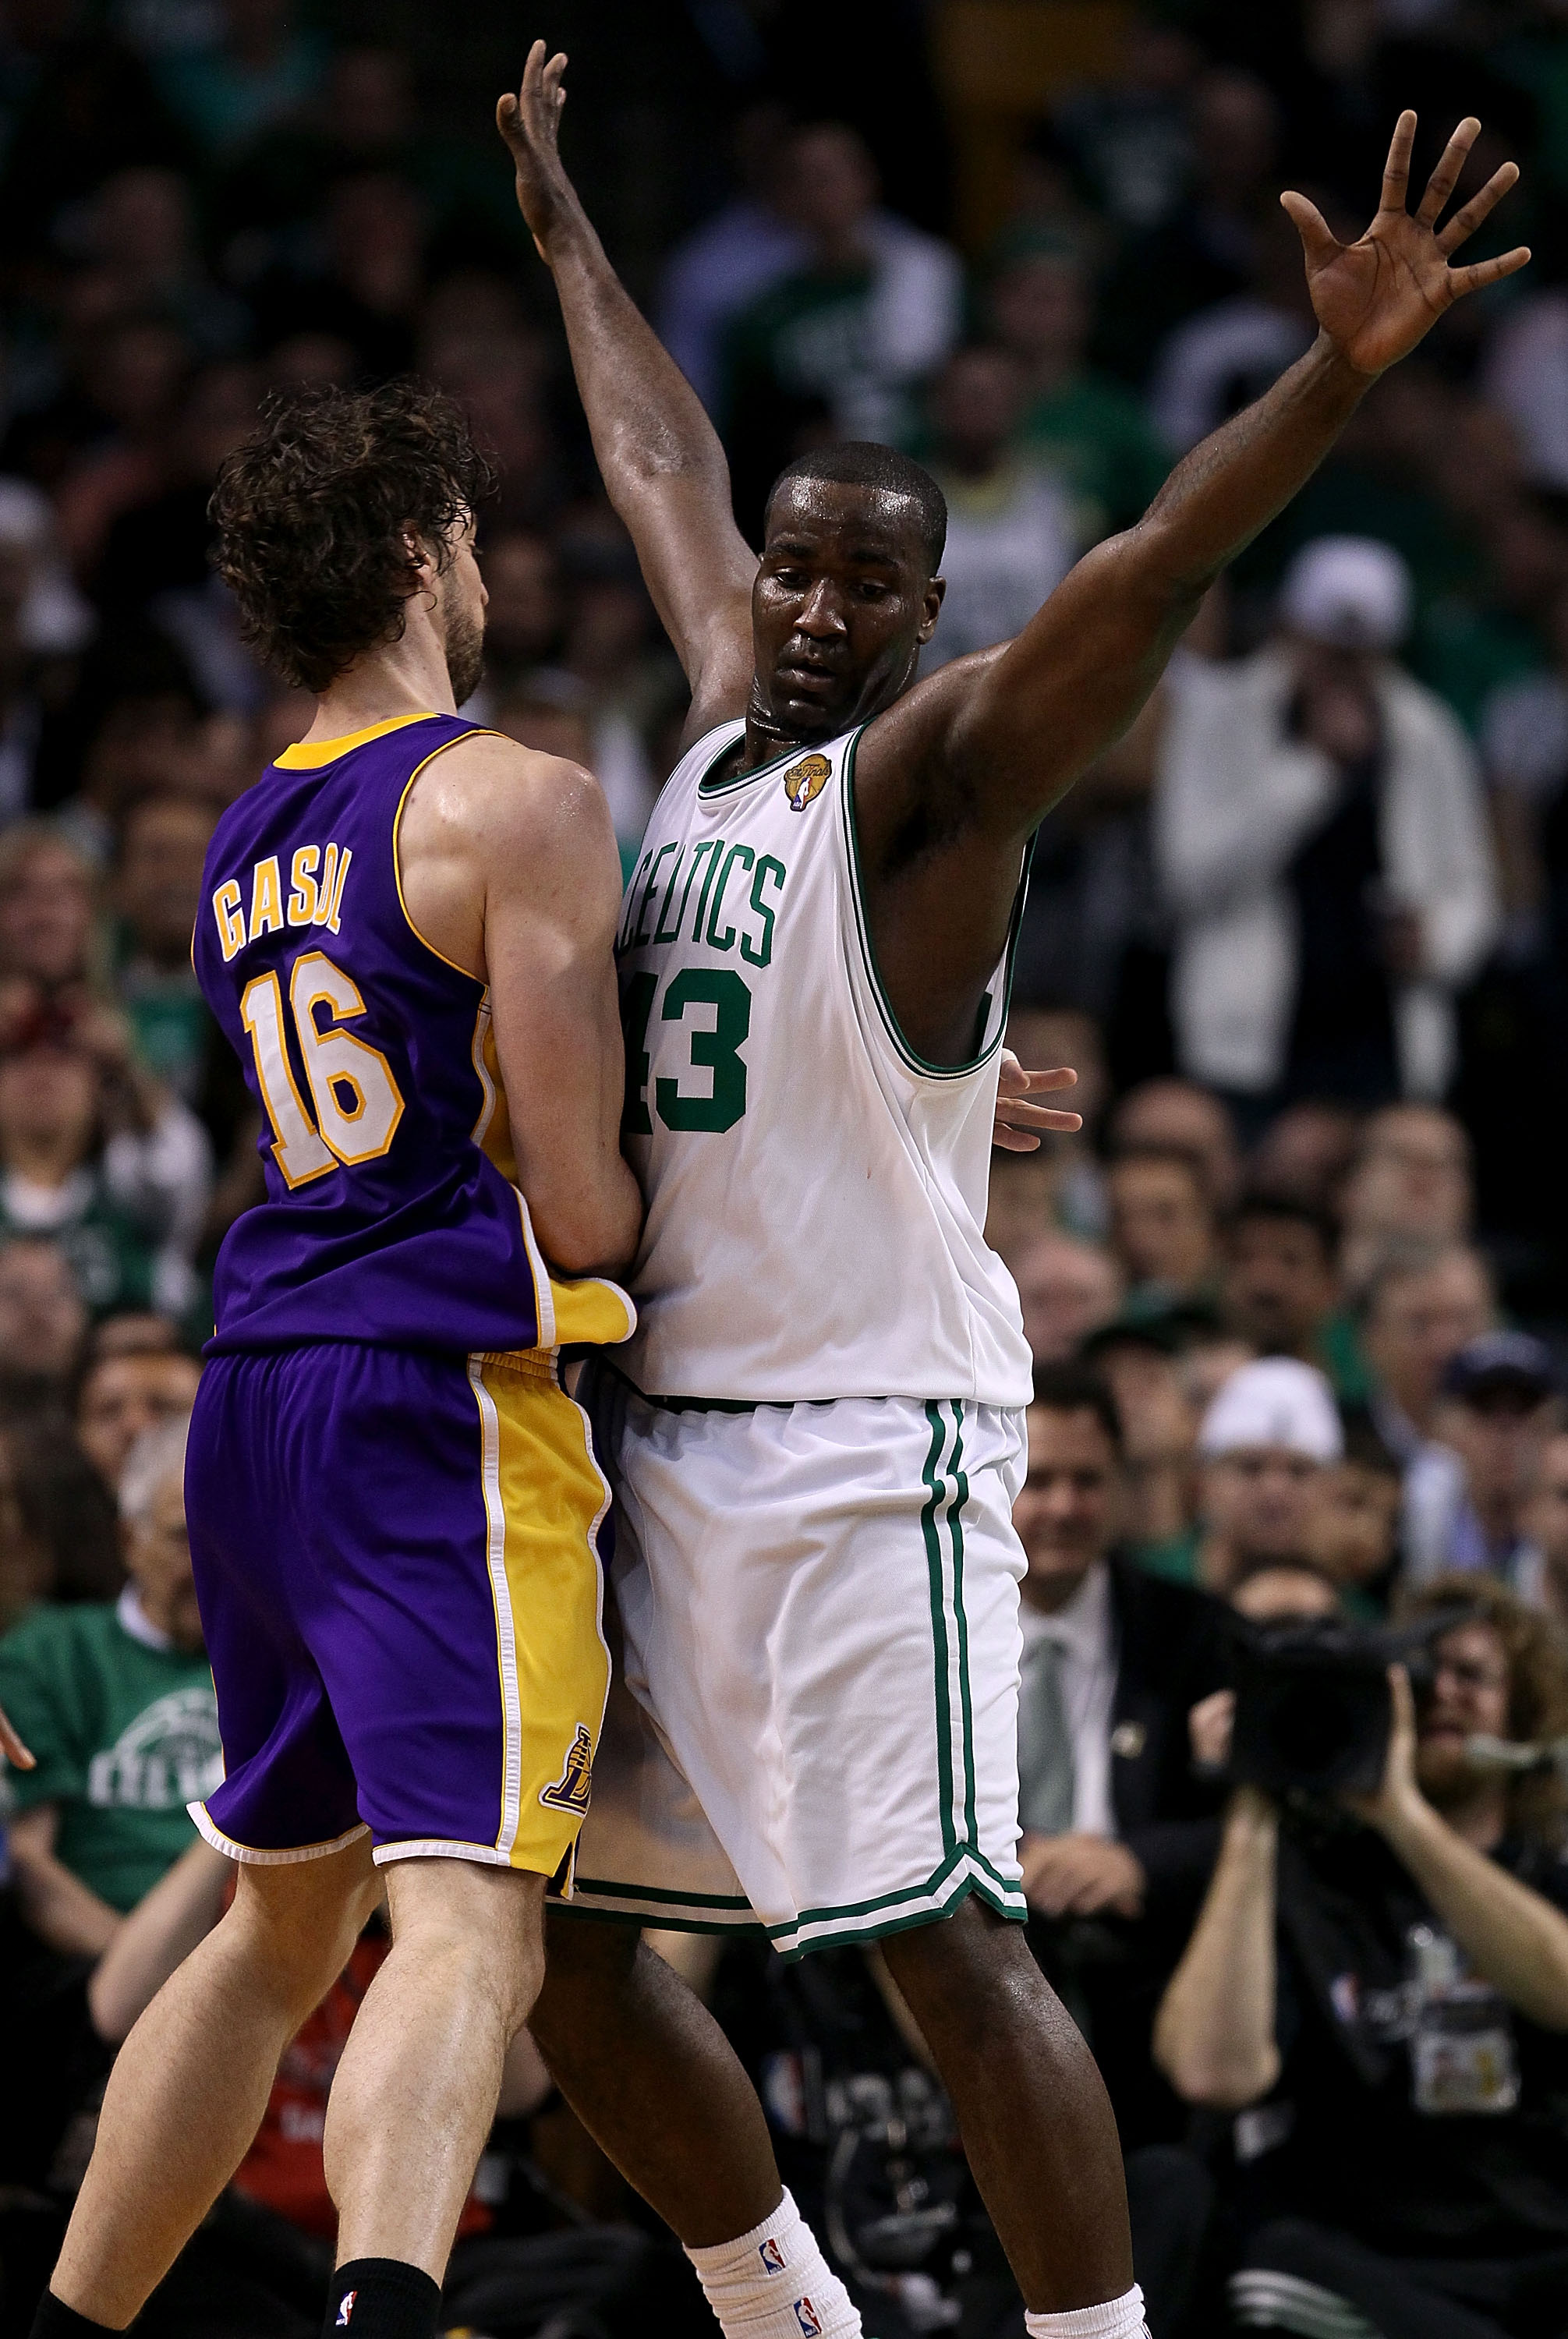 BOSTON - JUNE 10:  Kendrick Perkins #43 of the Boston Celltics plays defense against Pau Gasol #16 of the Los Angeles Lakers during Game Four of the 2010 NBA Finals on June 10, 2010 at TD Garden in Boston, Massachusetts. NOTE TO USER: User expressly ackno